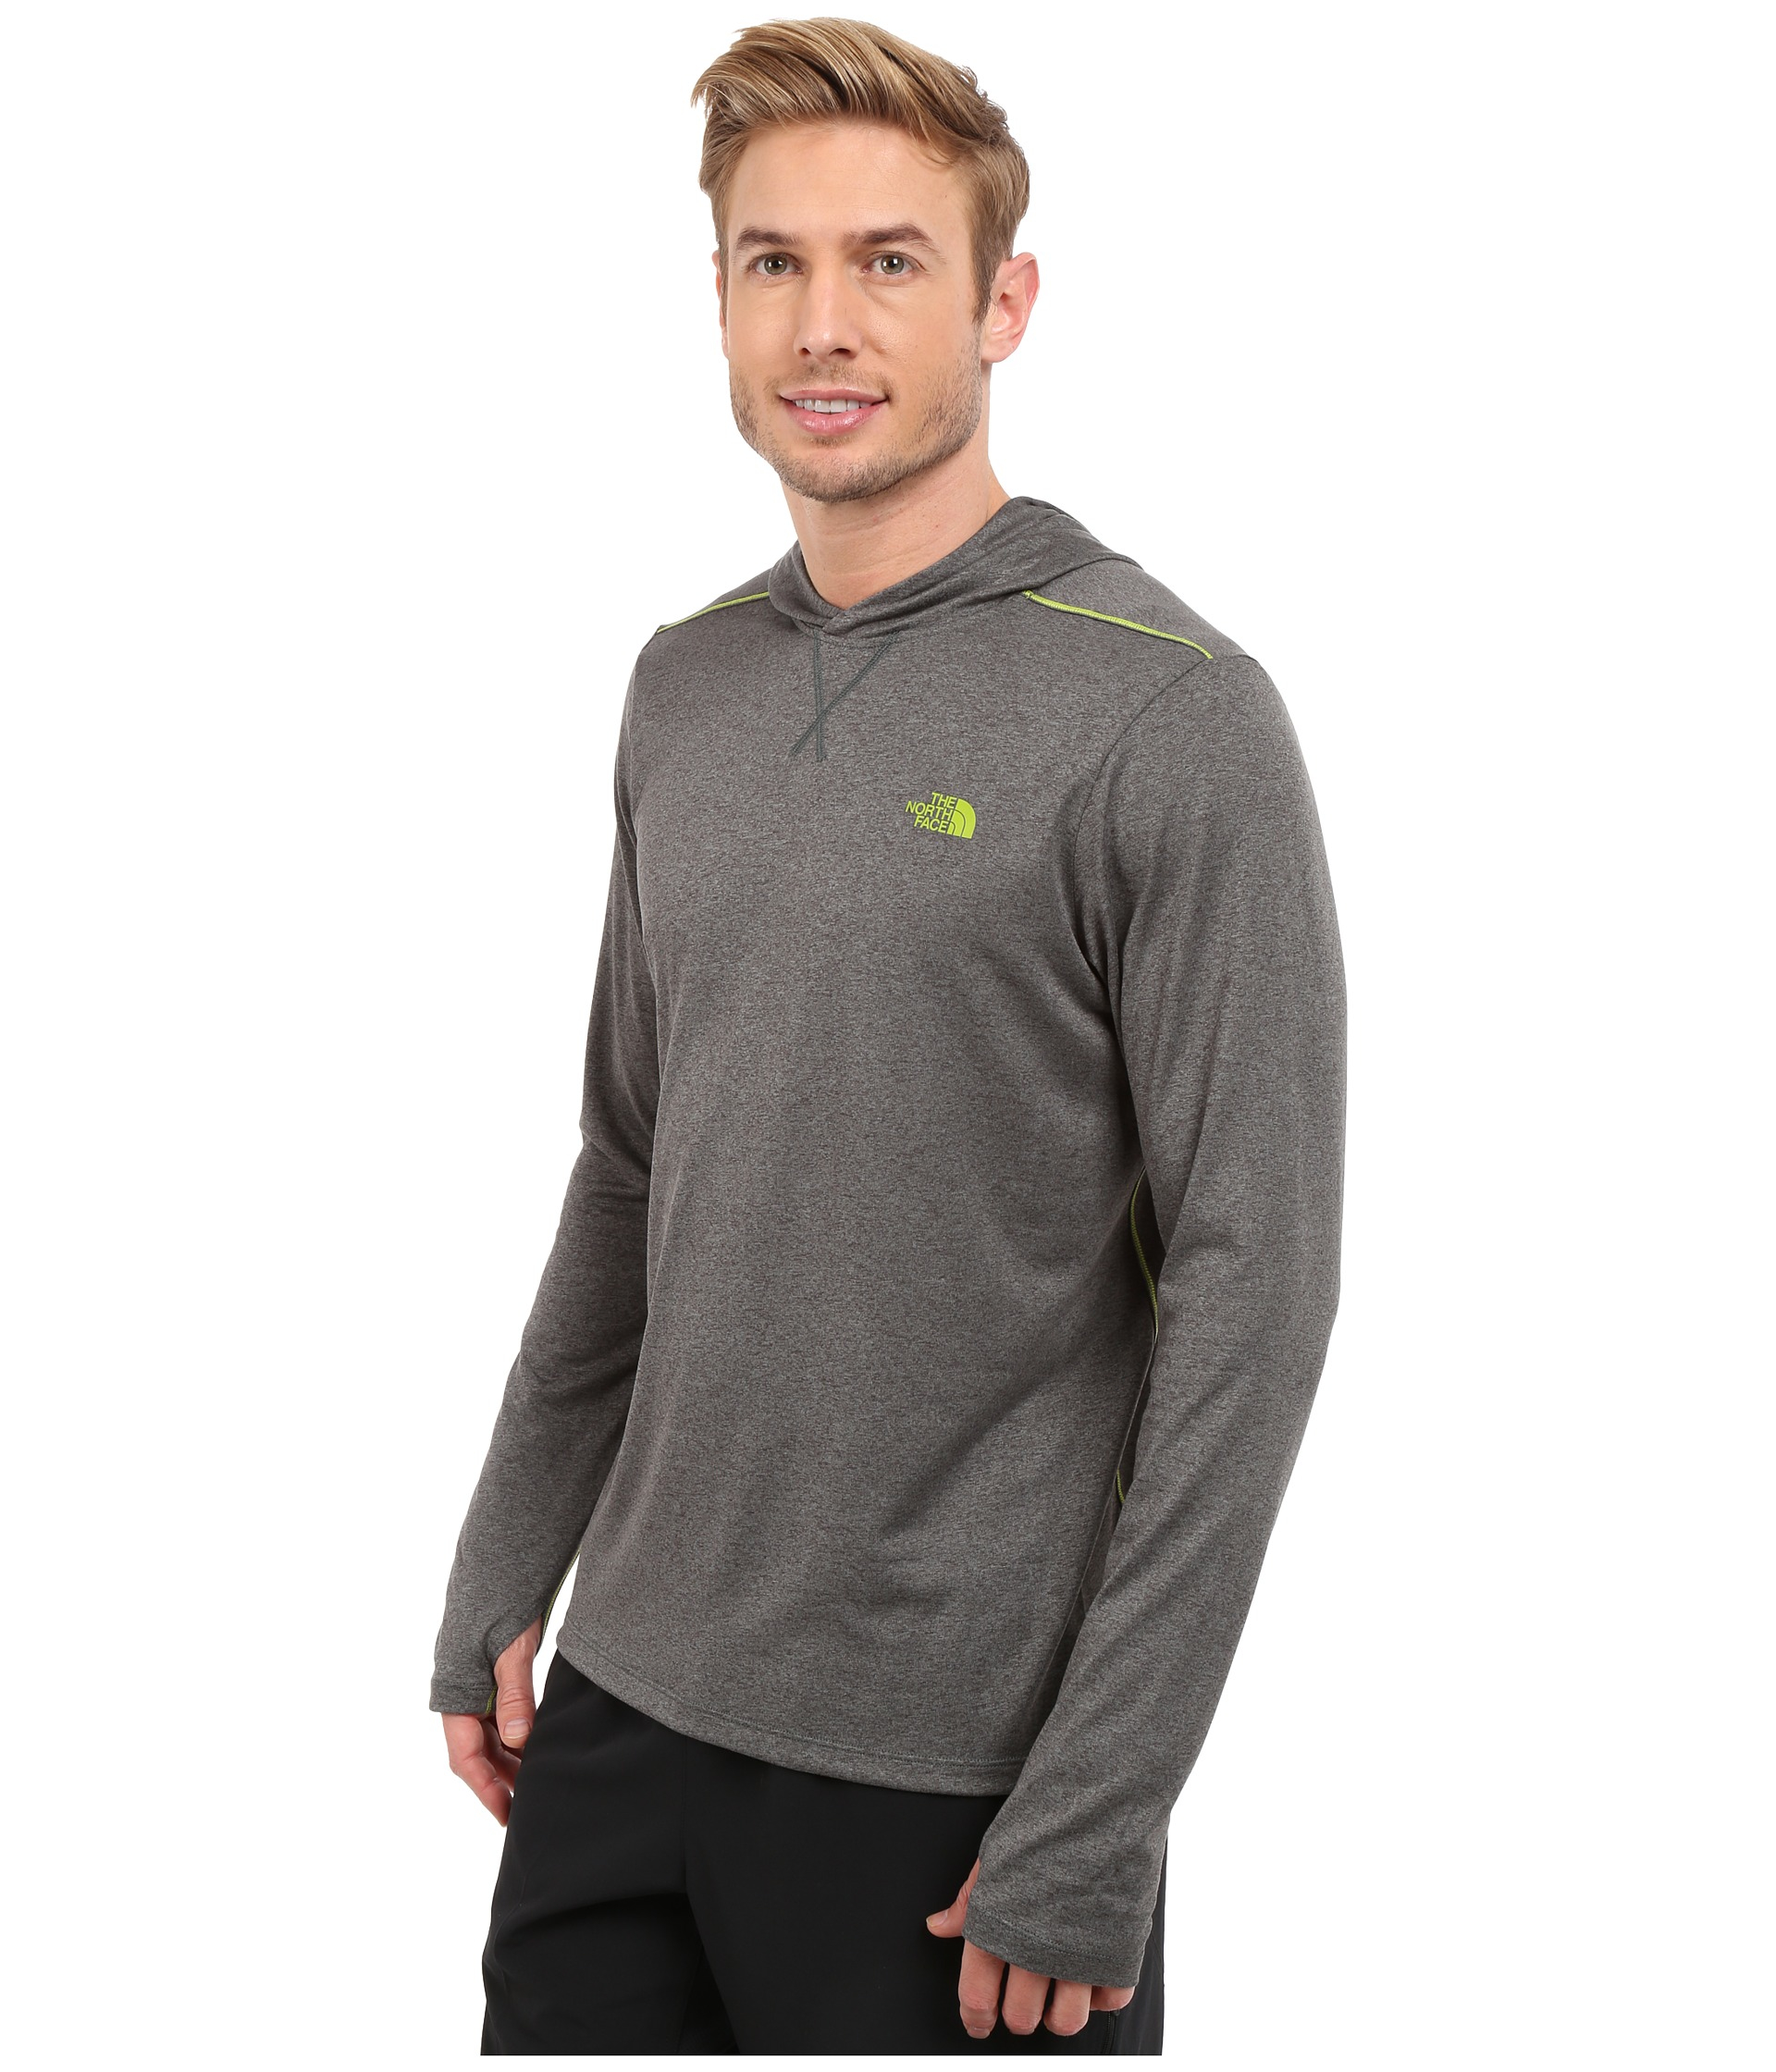 cd61c0757 The North Face Gray Reactor Hoodie for men